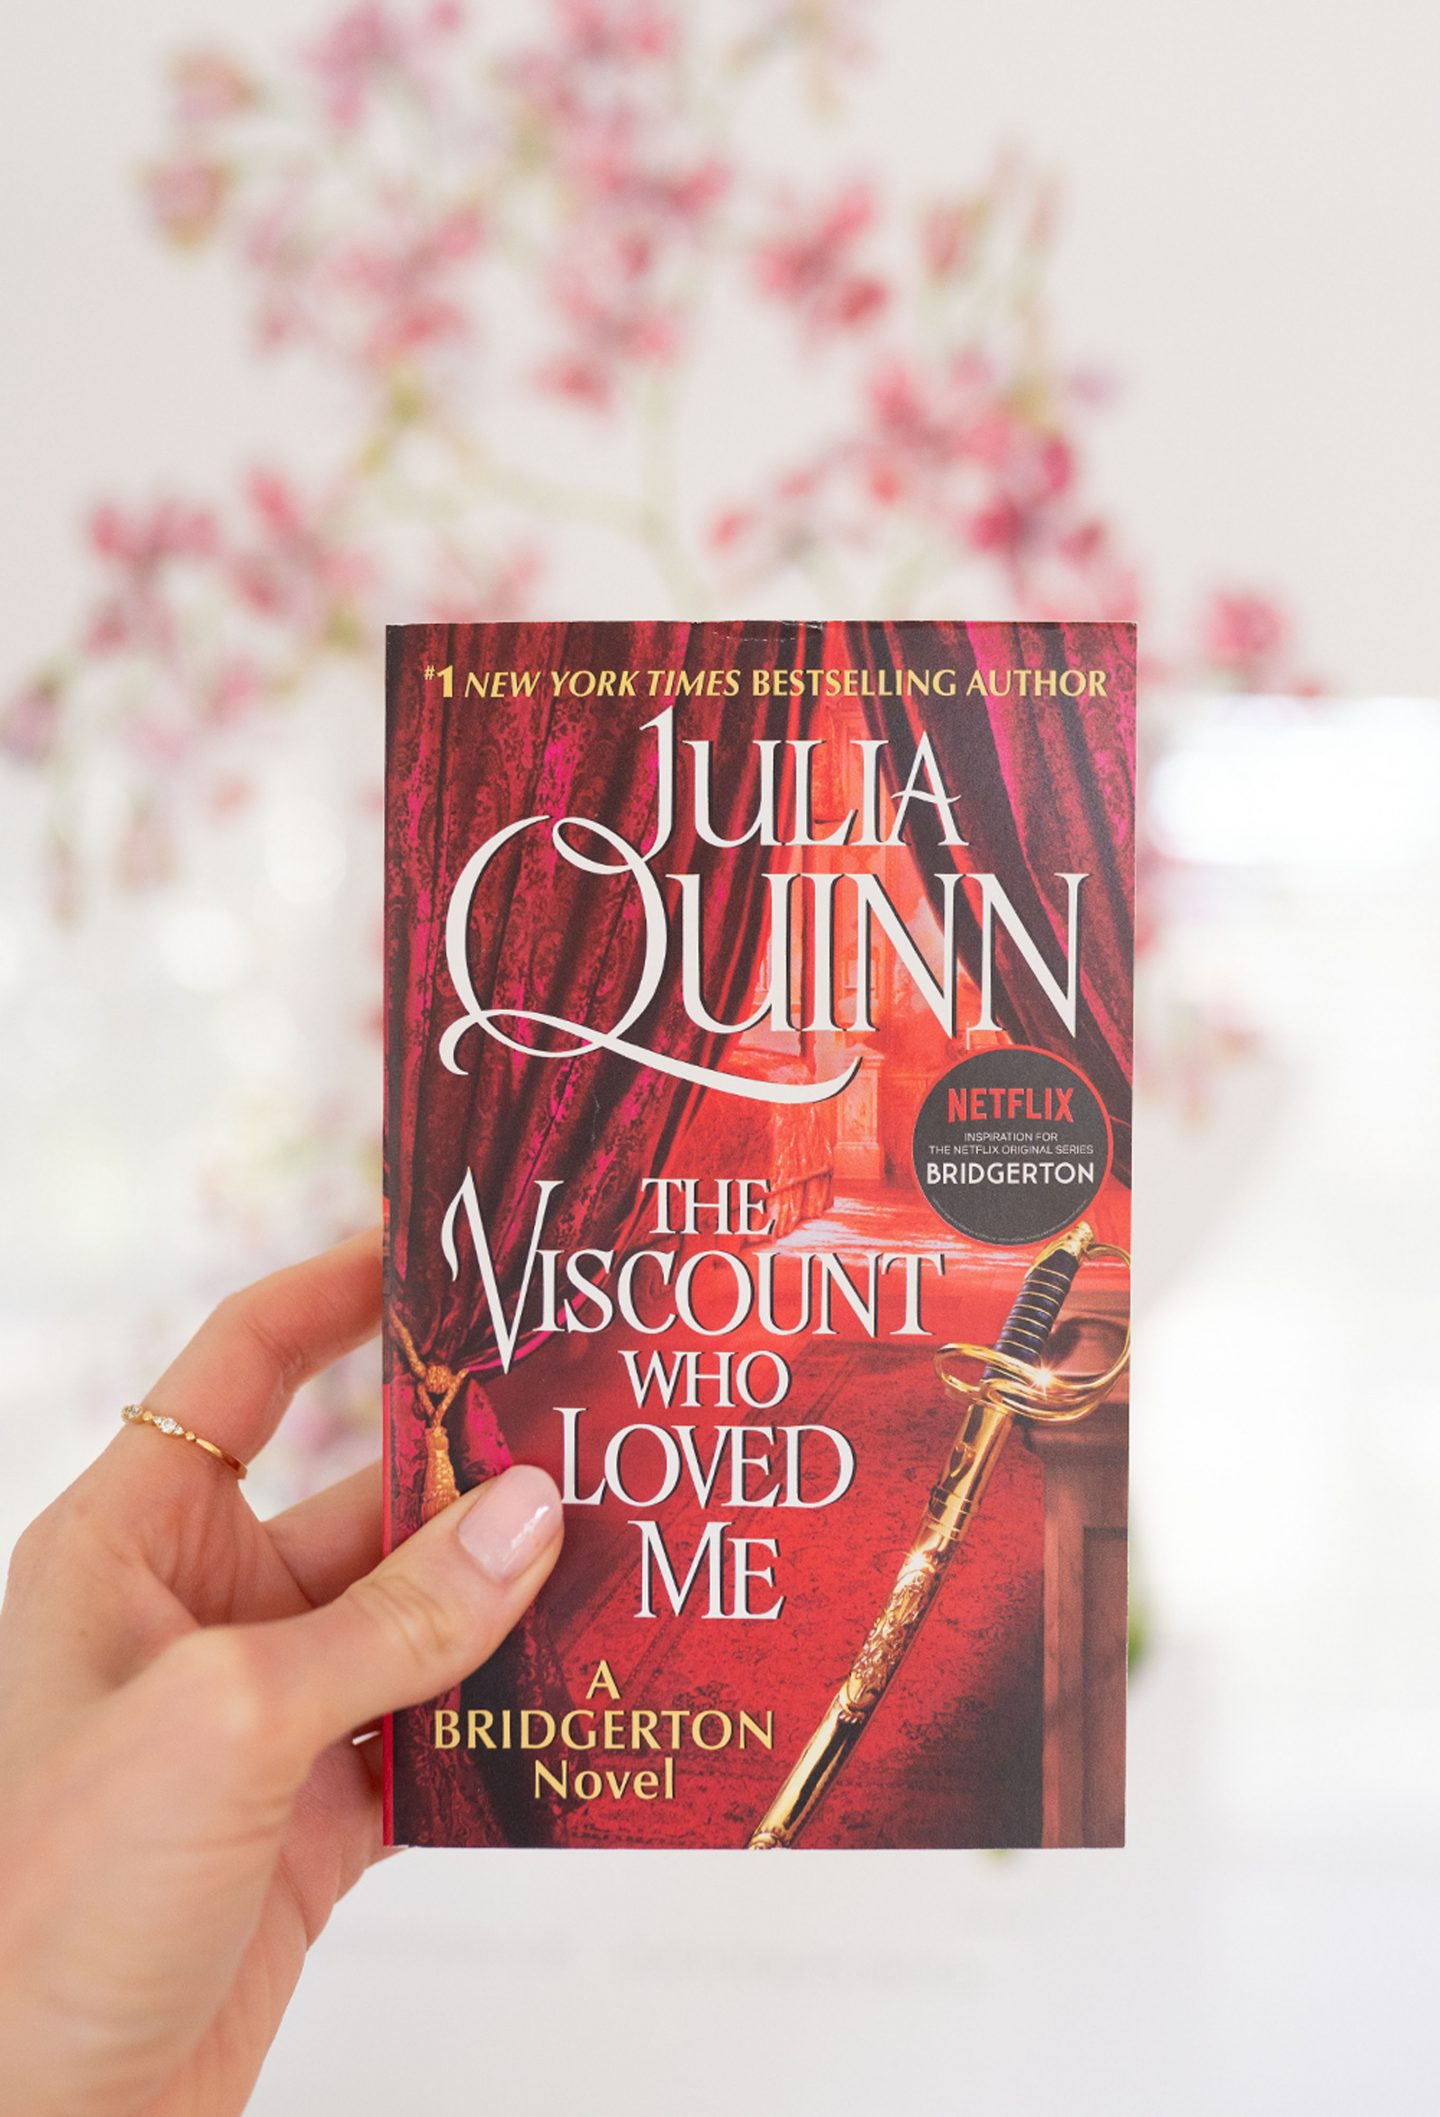 Discussion: The Viscount Who Loved Me